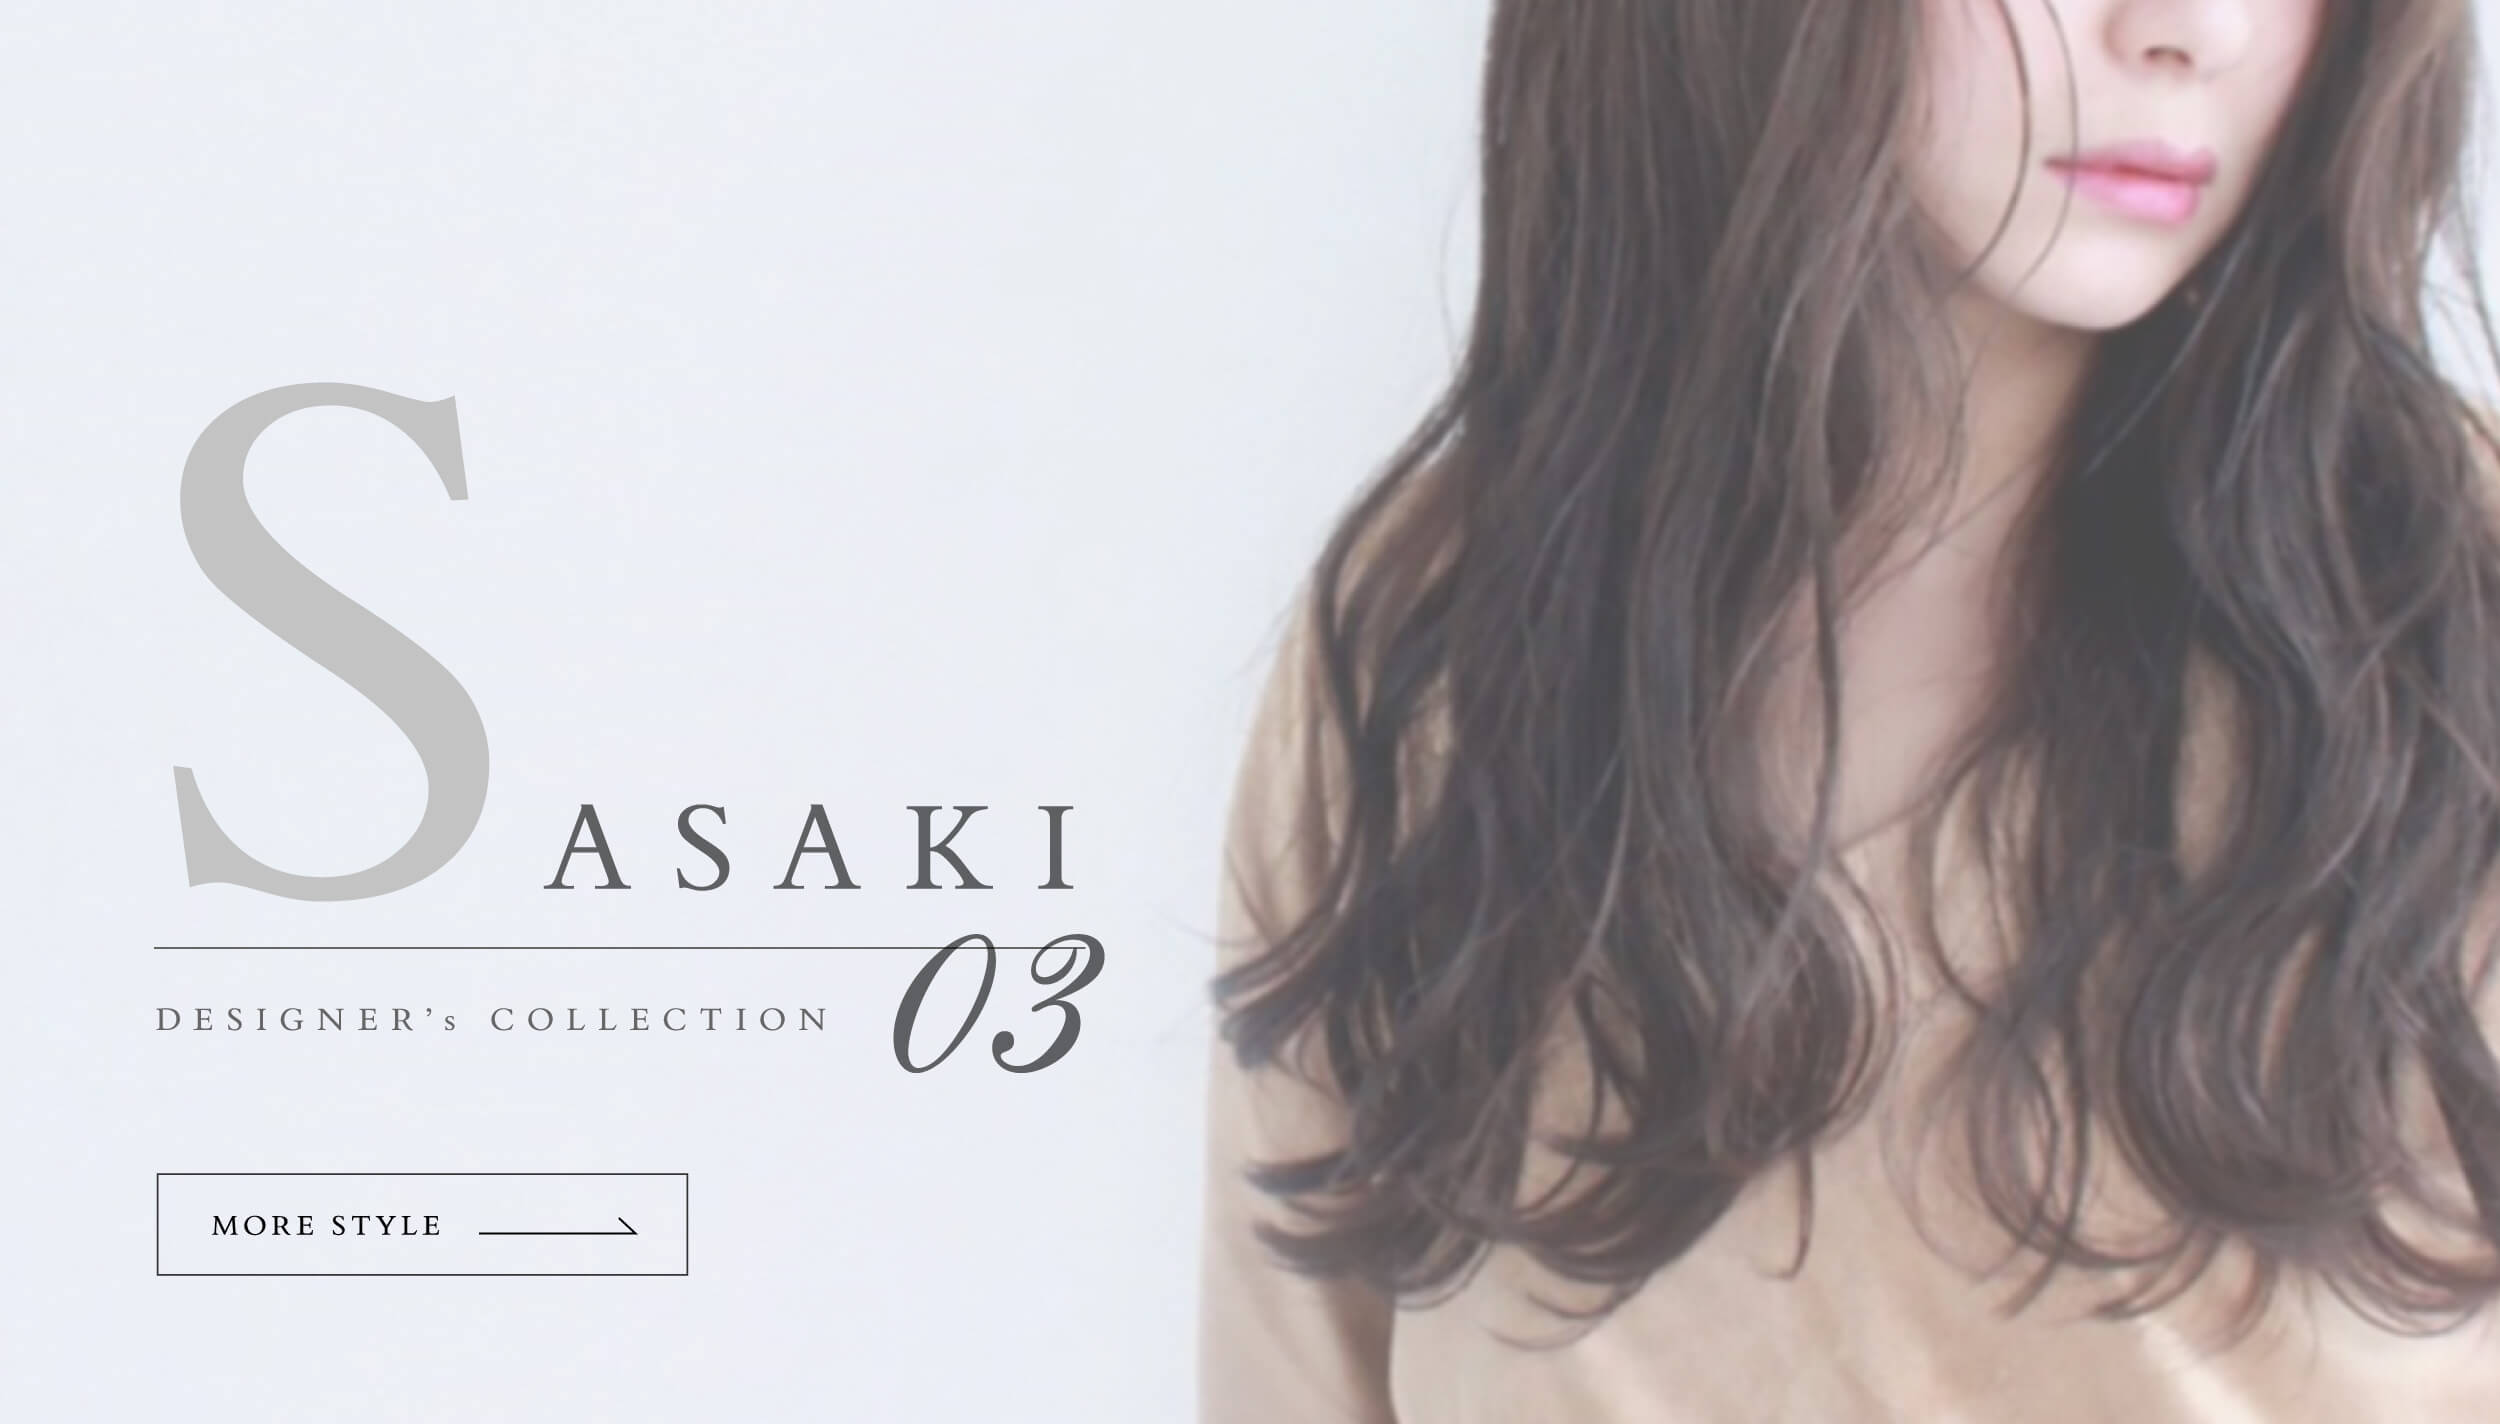 Designer's collection 03 SASAKI